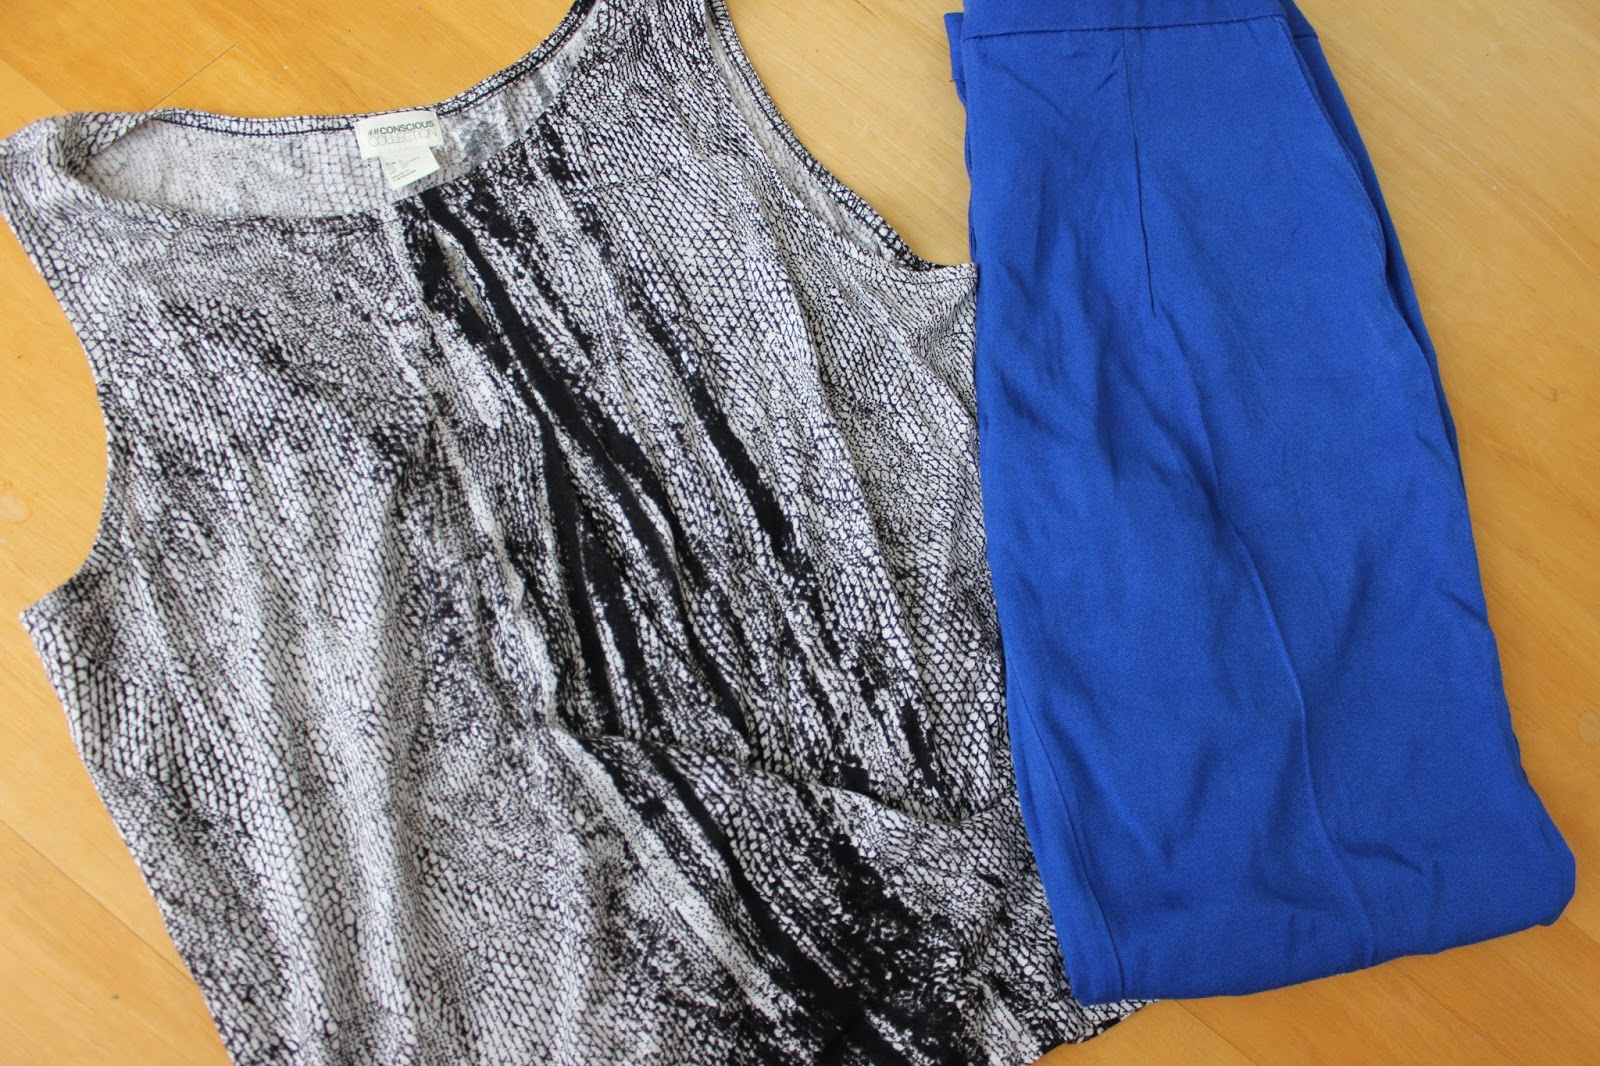 New in Shopping H&M Pants Snakeprint Animalprint Top